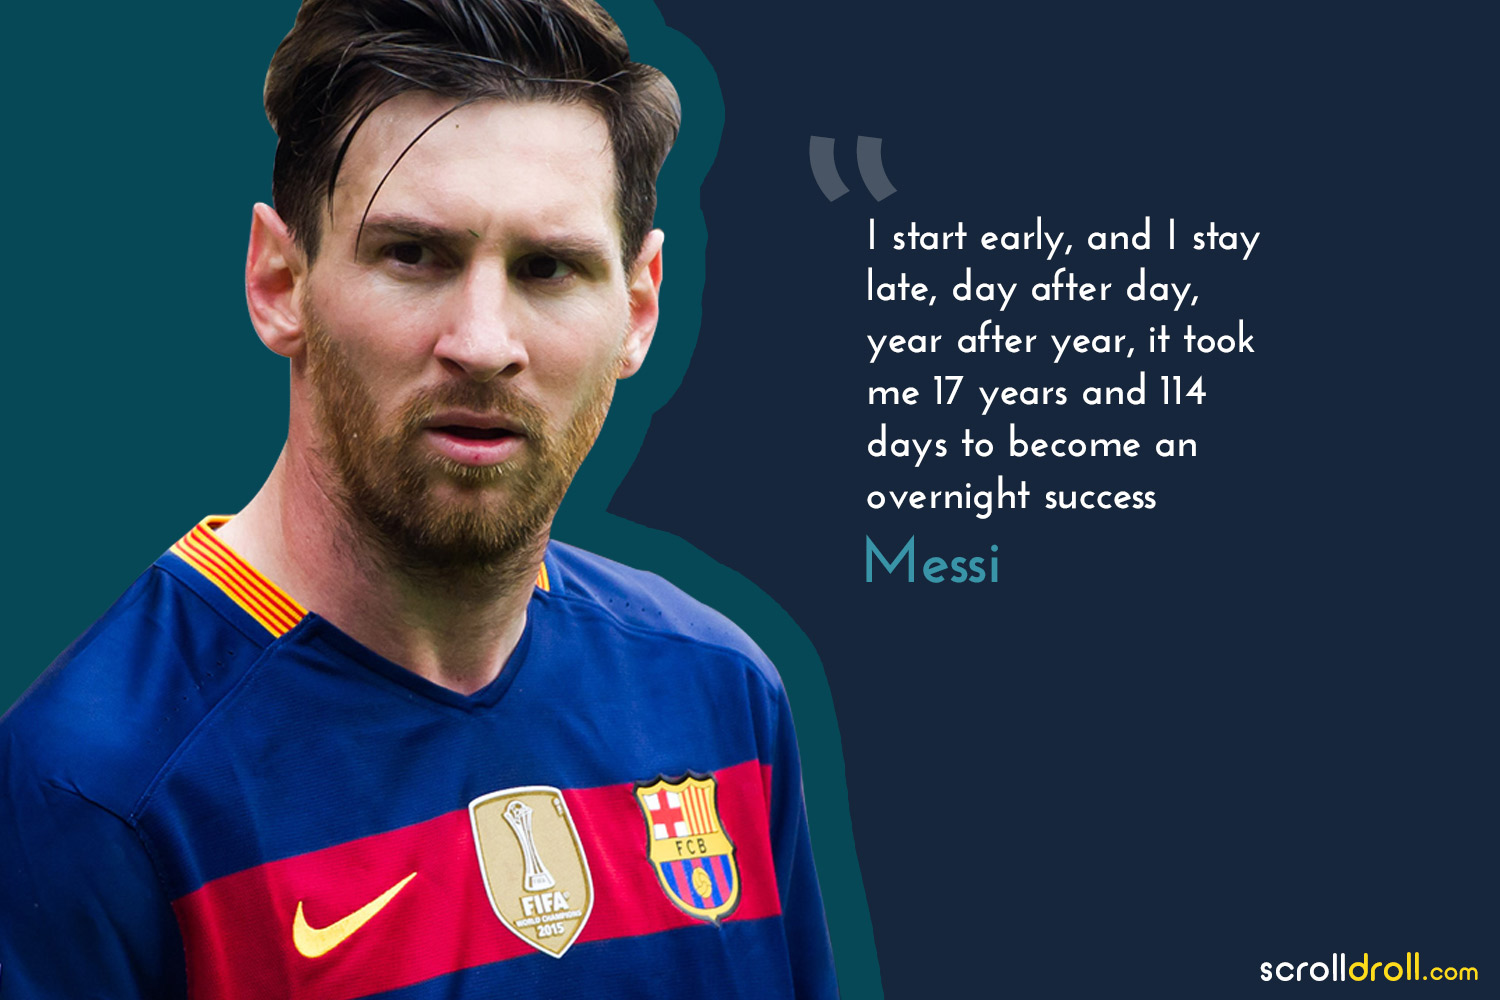 Powerful Quotes By Successful People- quote by messi